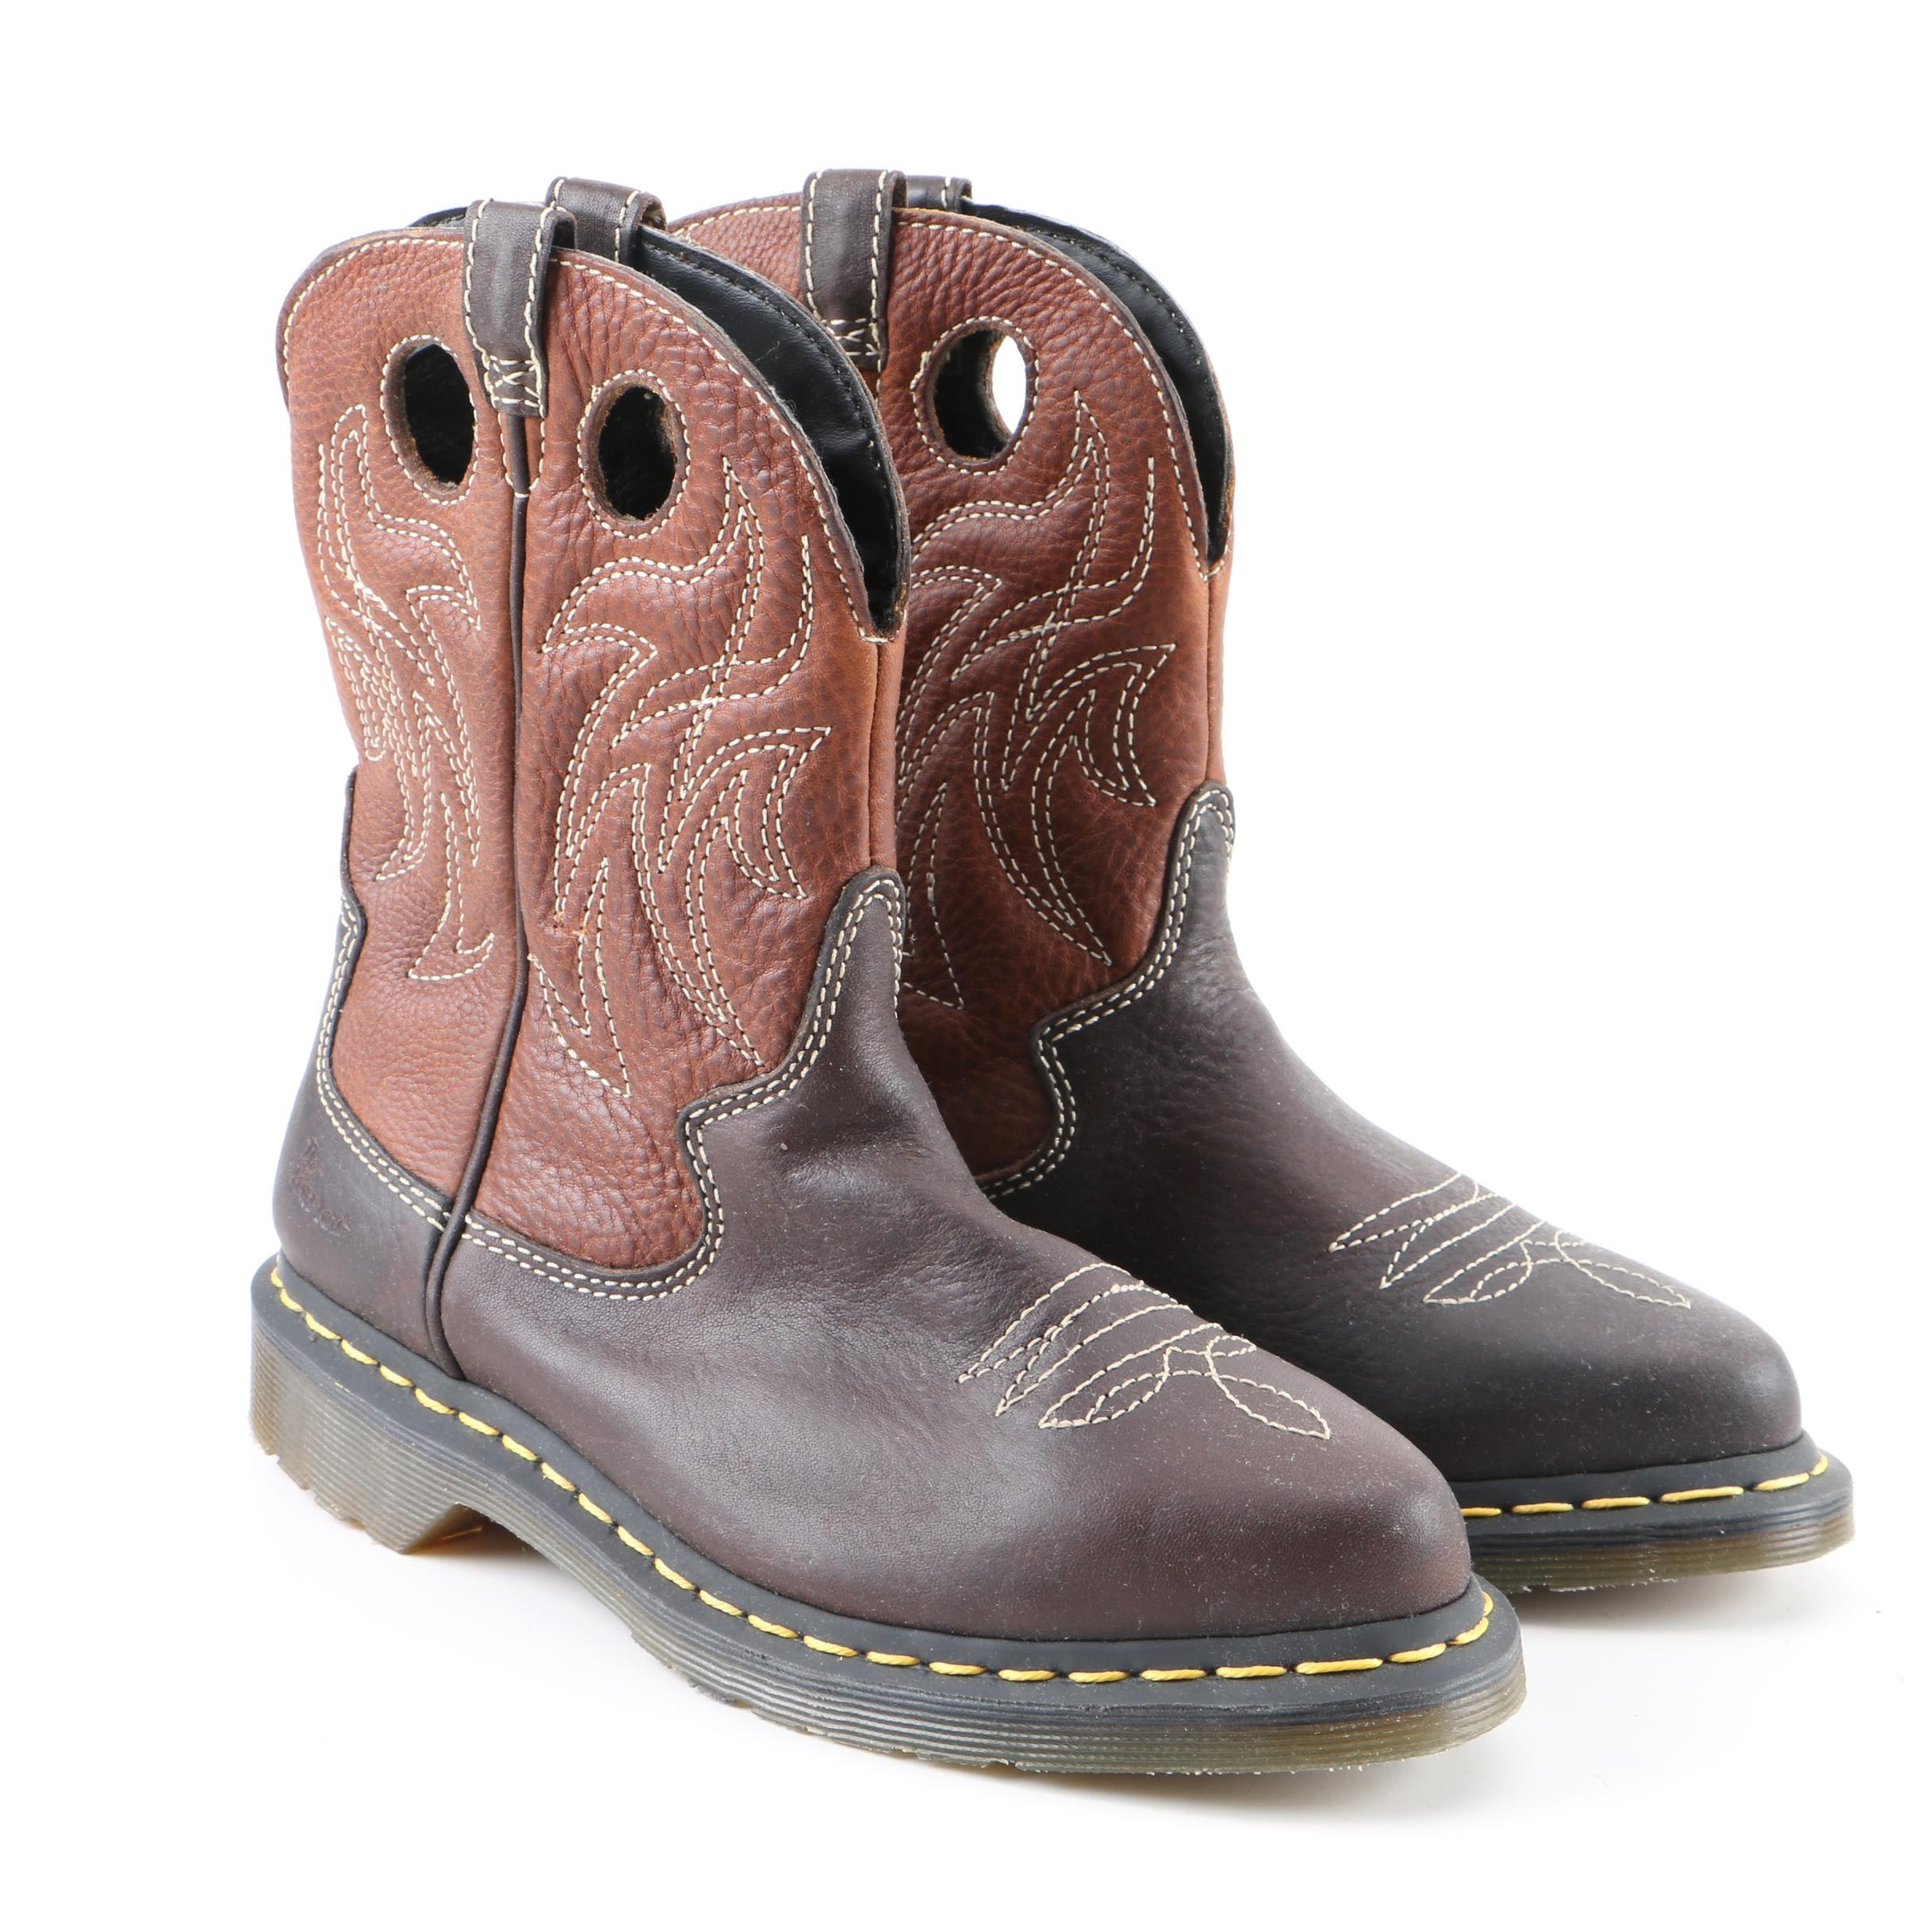 Women's Dr. Martens Brown Leather Western Boots